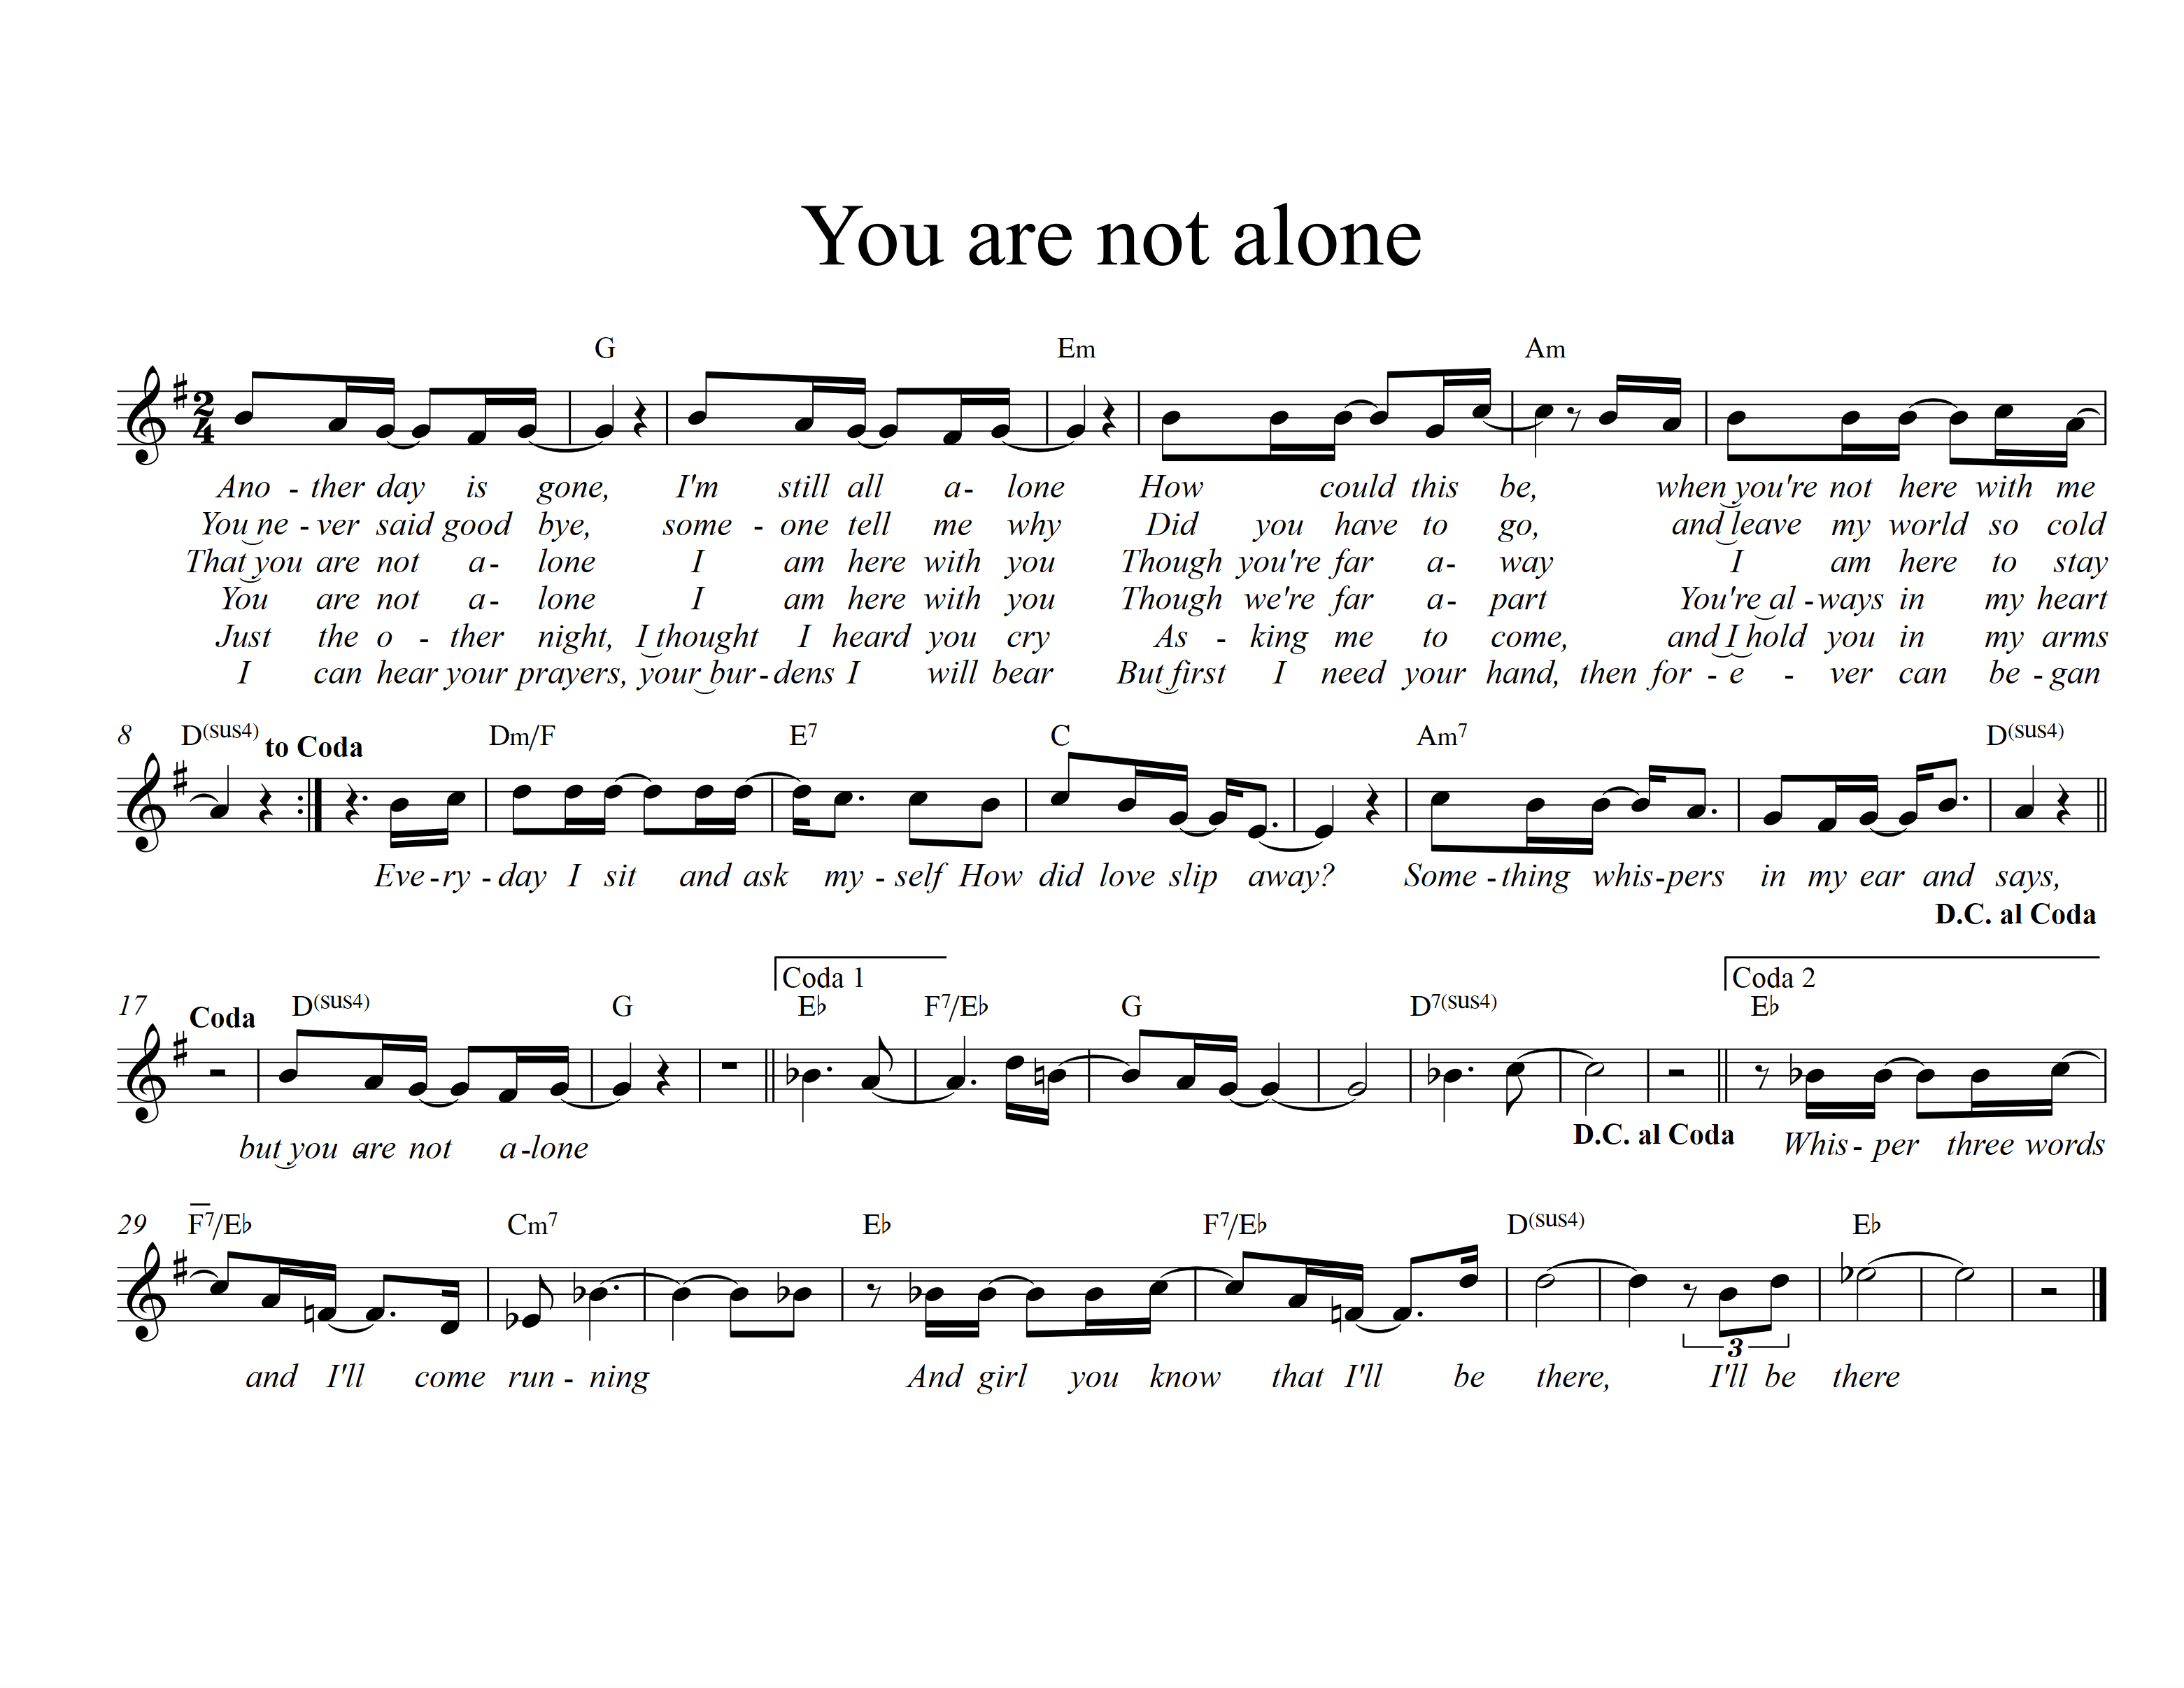 You are not alone - G